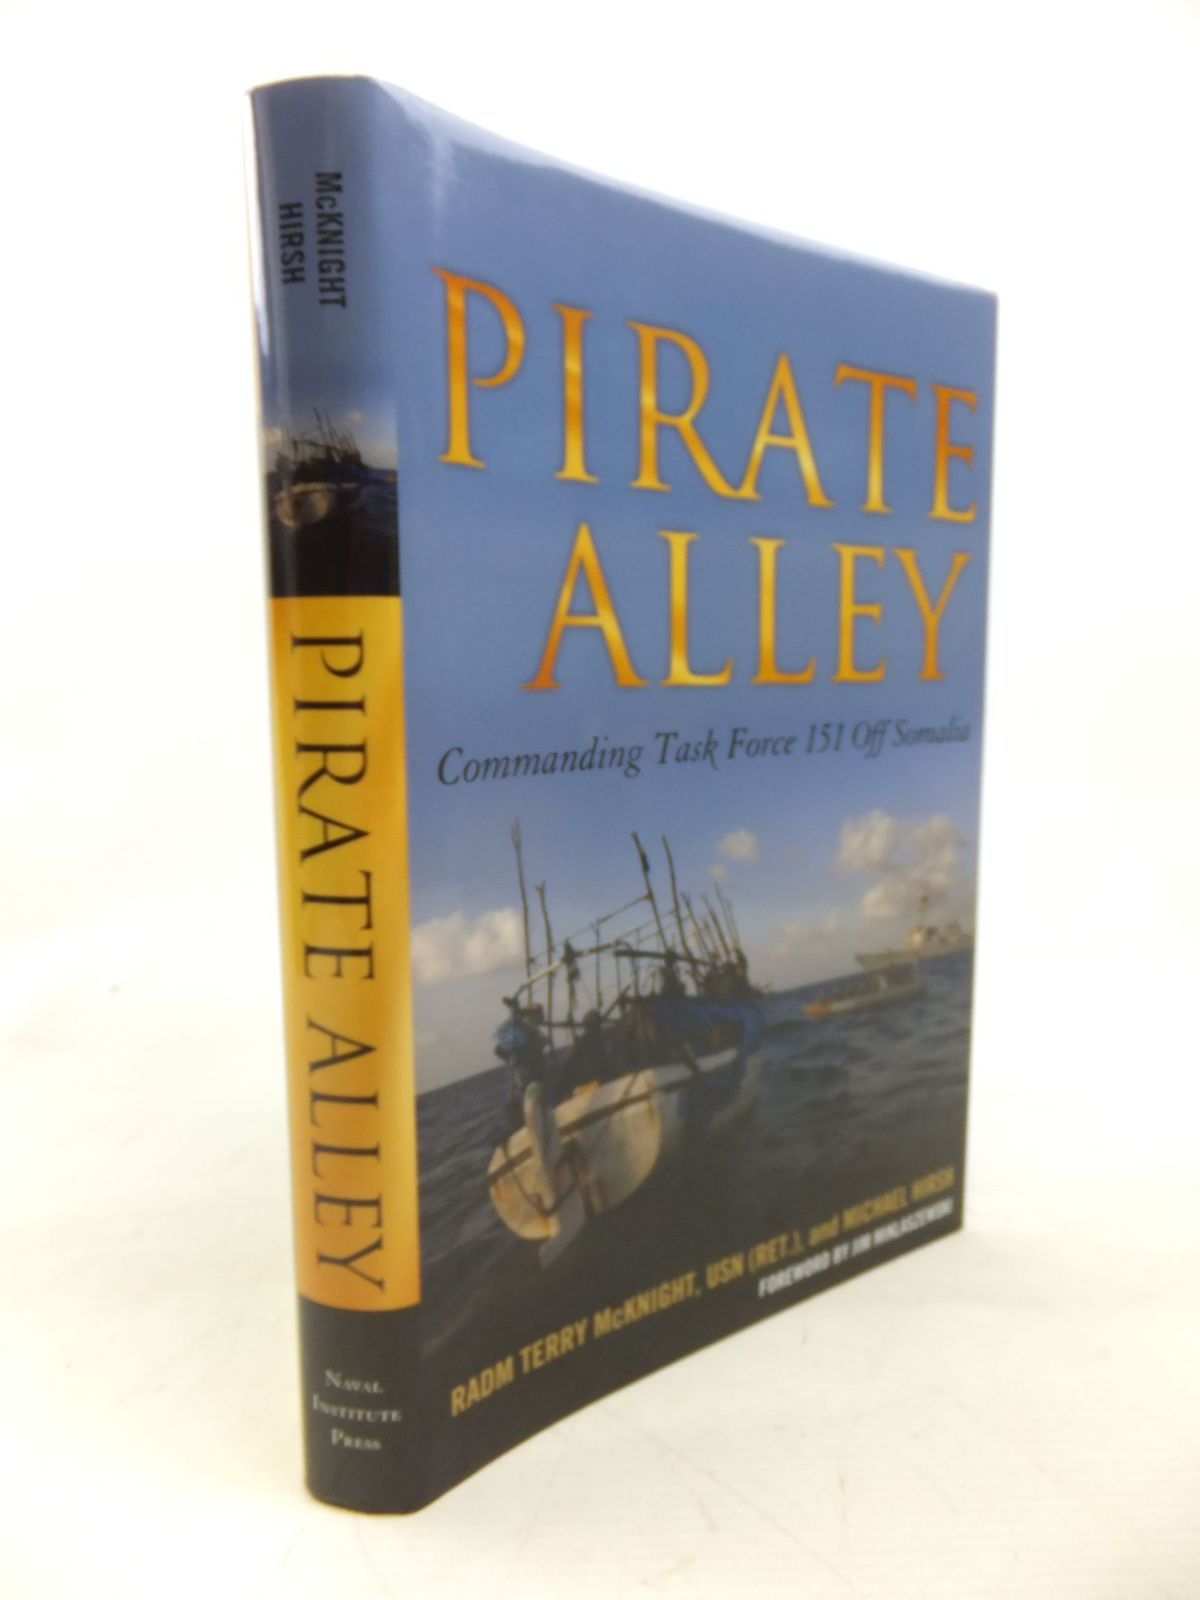 Photo of PIRATE ALLEY COMMANDING TASK FORCE 151 OFF SOMALIA written by McKnight, Radm Terry<br />Hirsh, Michael published by Naval Institute Press (STOCK CODE: 2116150)  for sale by Stella & Rose's Books